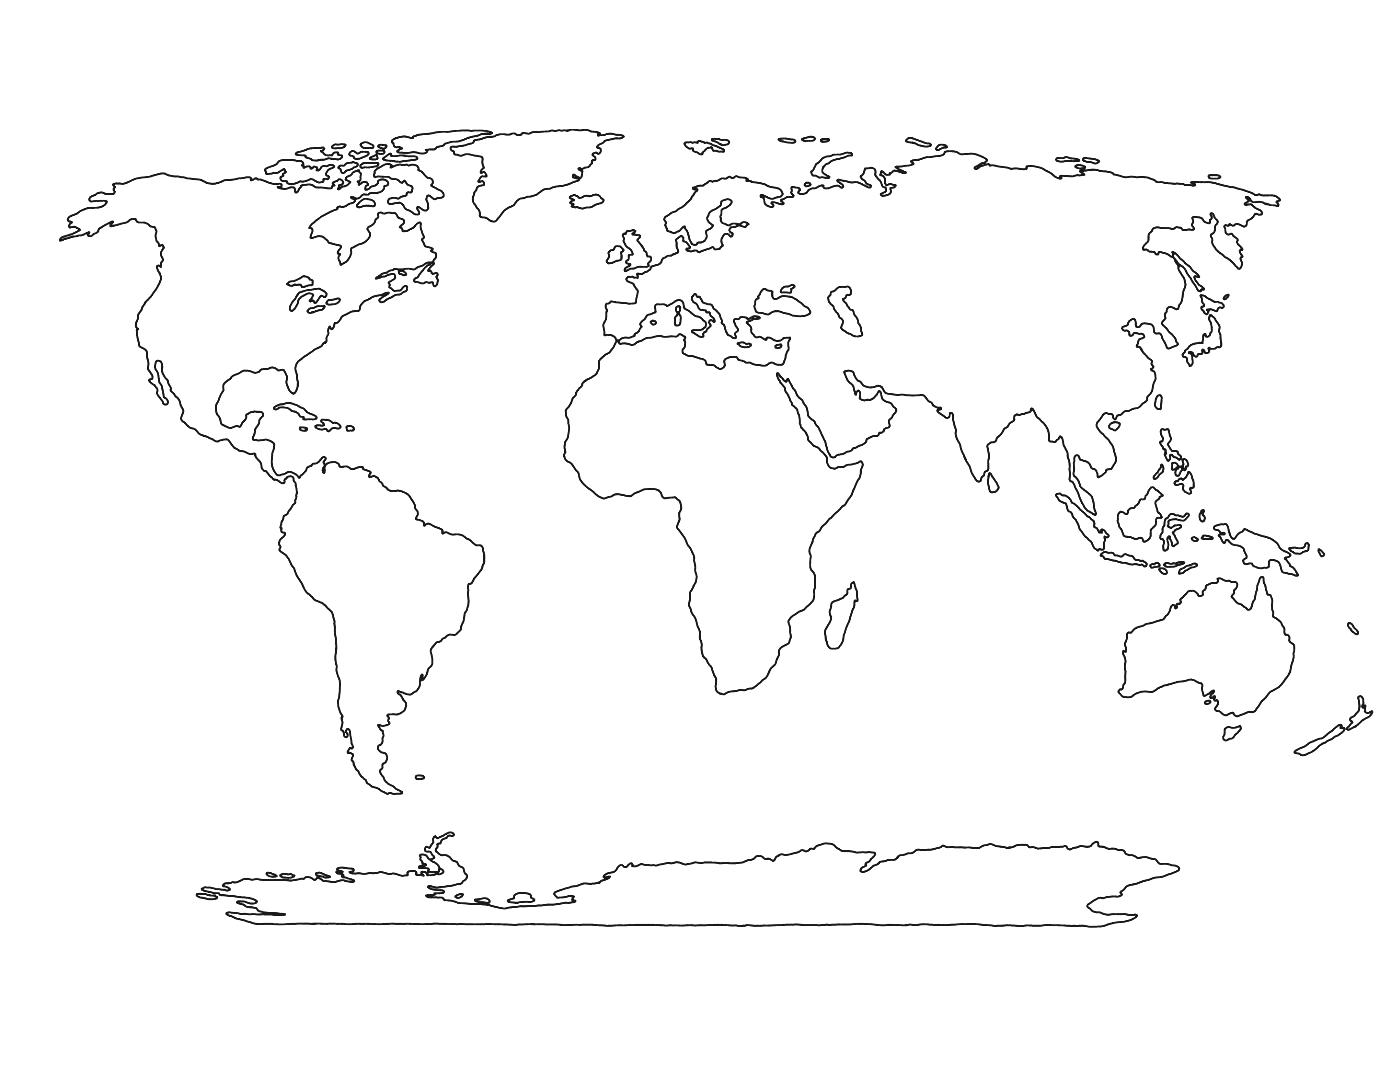 Continent clipart world political Wogucolor  C Maps Countries